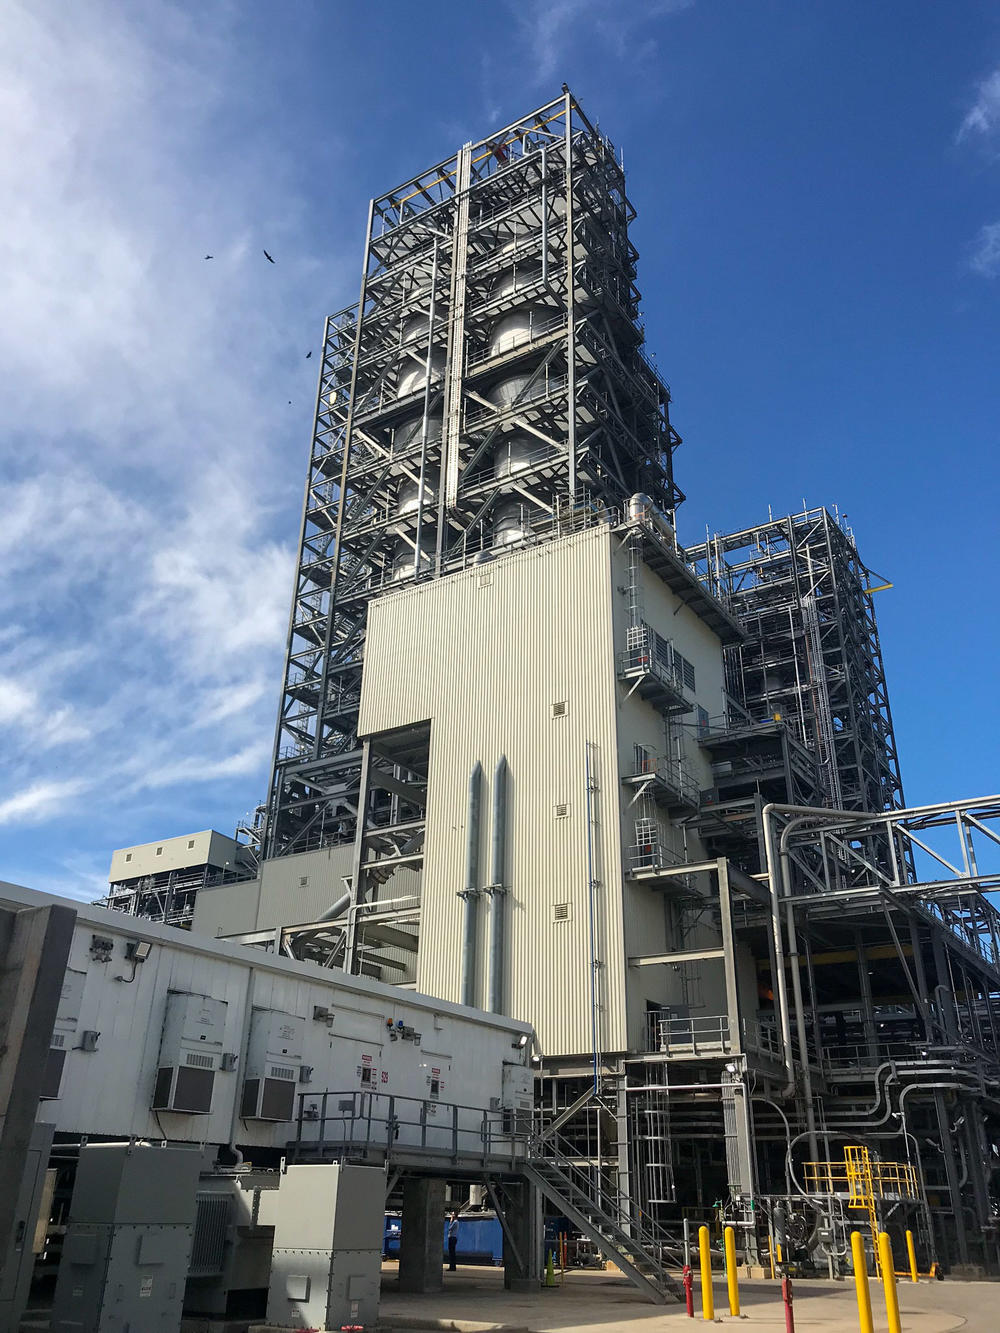 Chevron Phillips Chemical's new $6 billion plastic manufacturing plant rises from the skyline in Sweeny, Texas. Company officials say they see a bright future for their products as demand for plastic continues to rise.